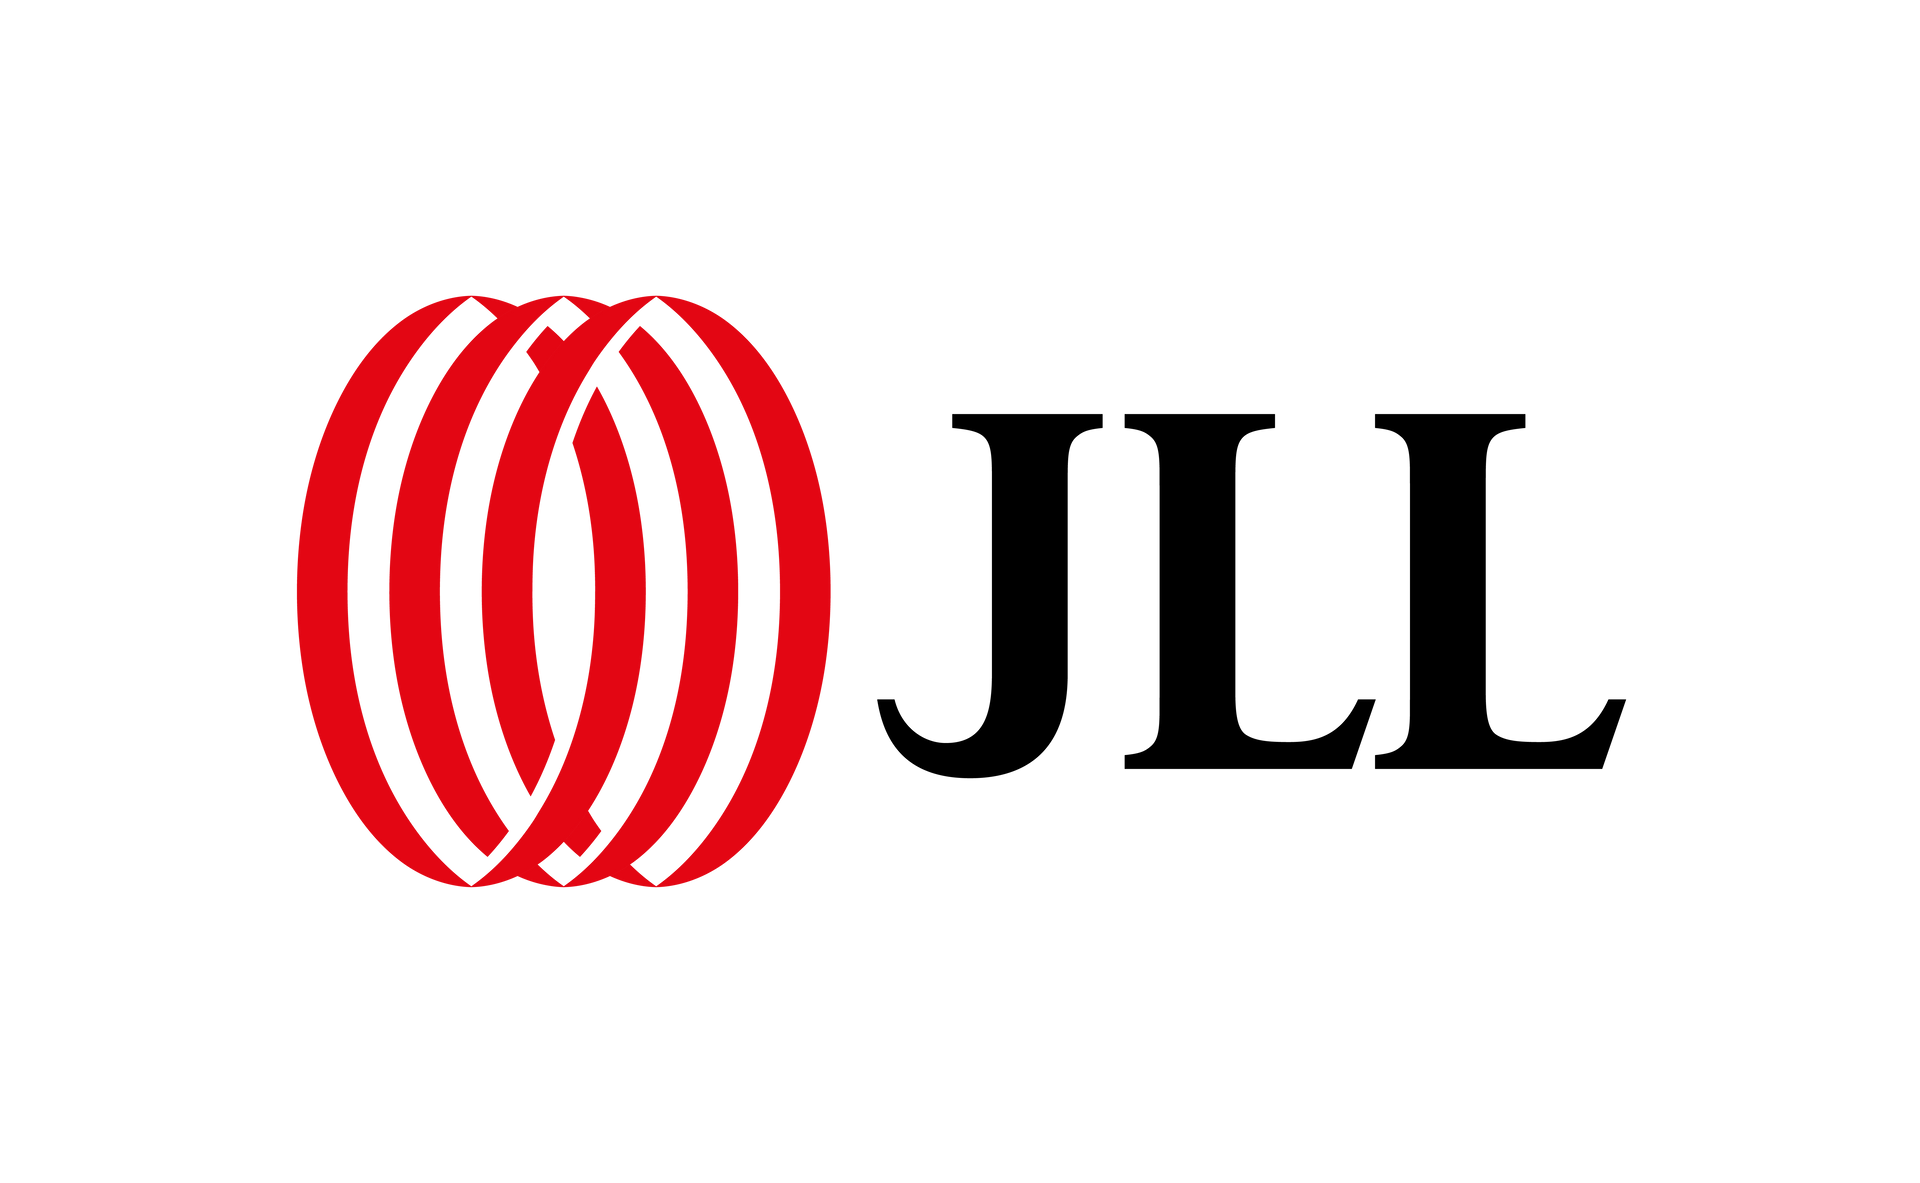 JLL_Logo_Positive_10-29mm_RGB (2).png